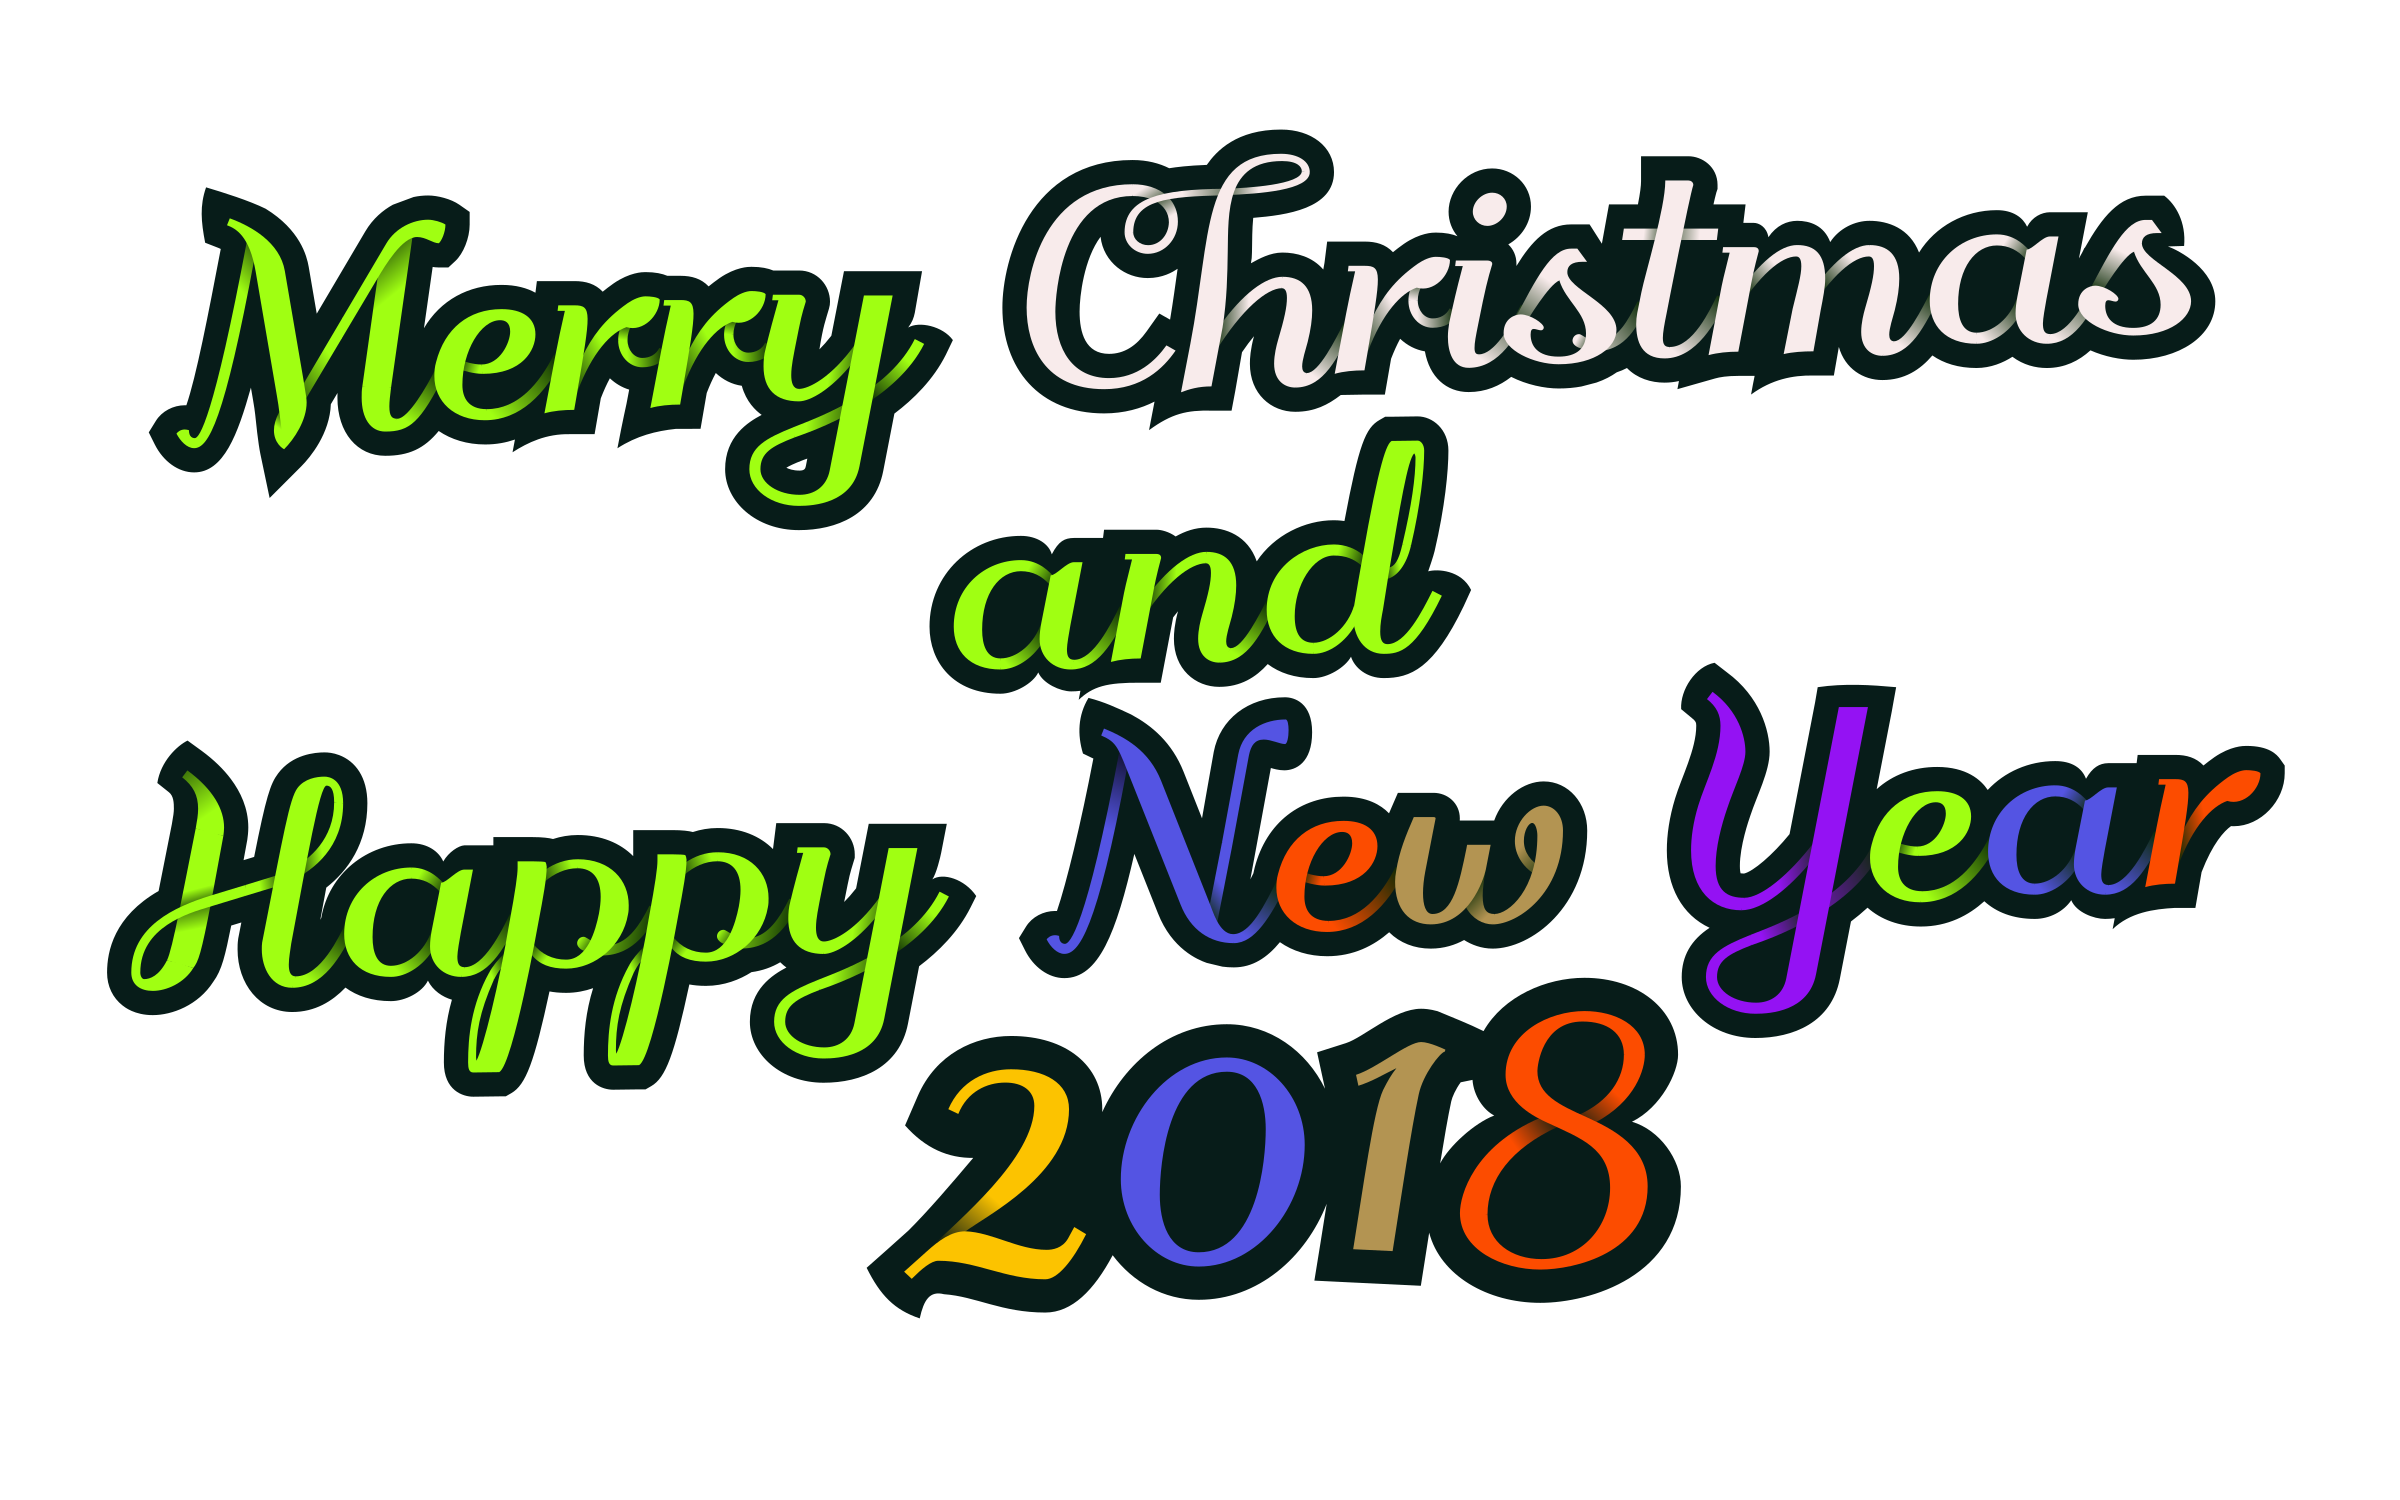 Happy new year 2018 text png. Clipart merry christmas decorative